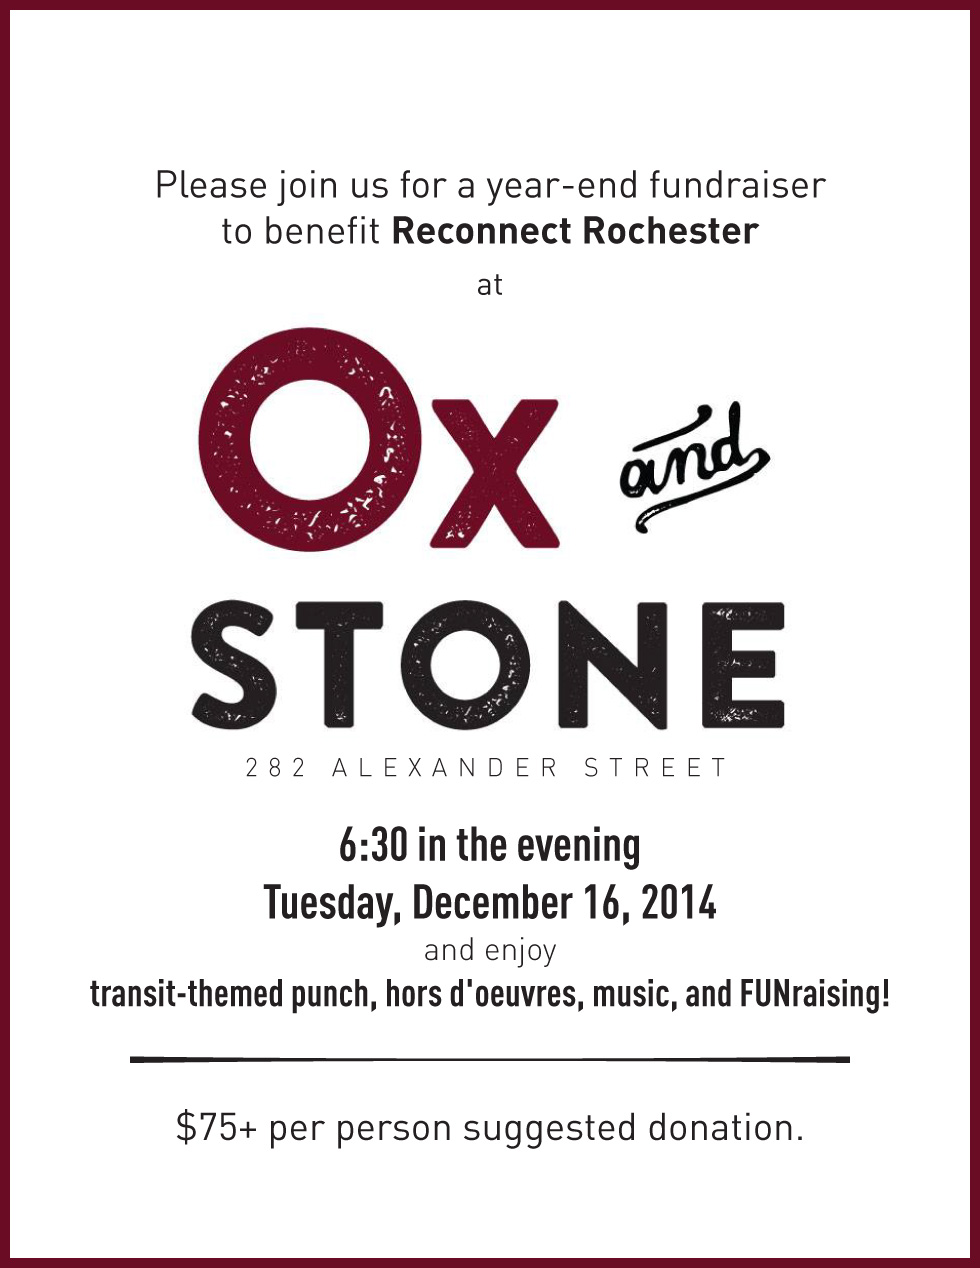 Join us for a fundraising event to benefit Reconnect Rochester.